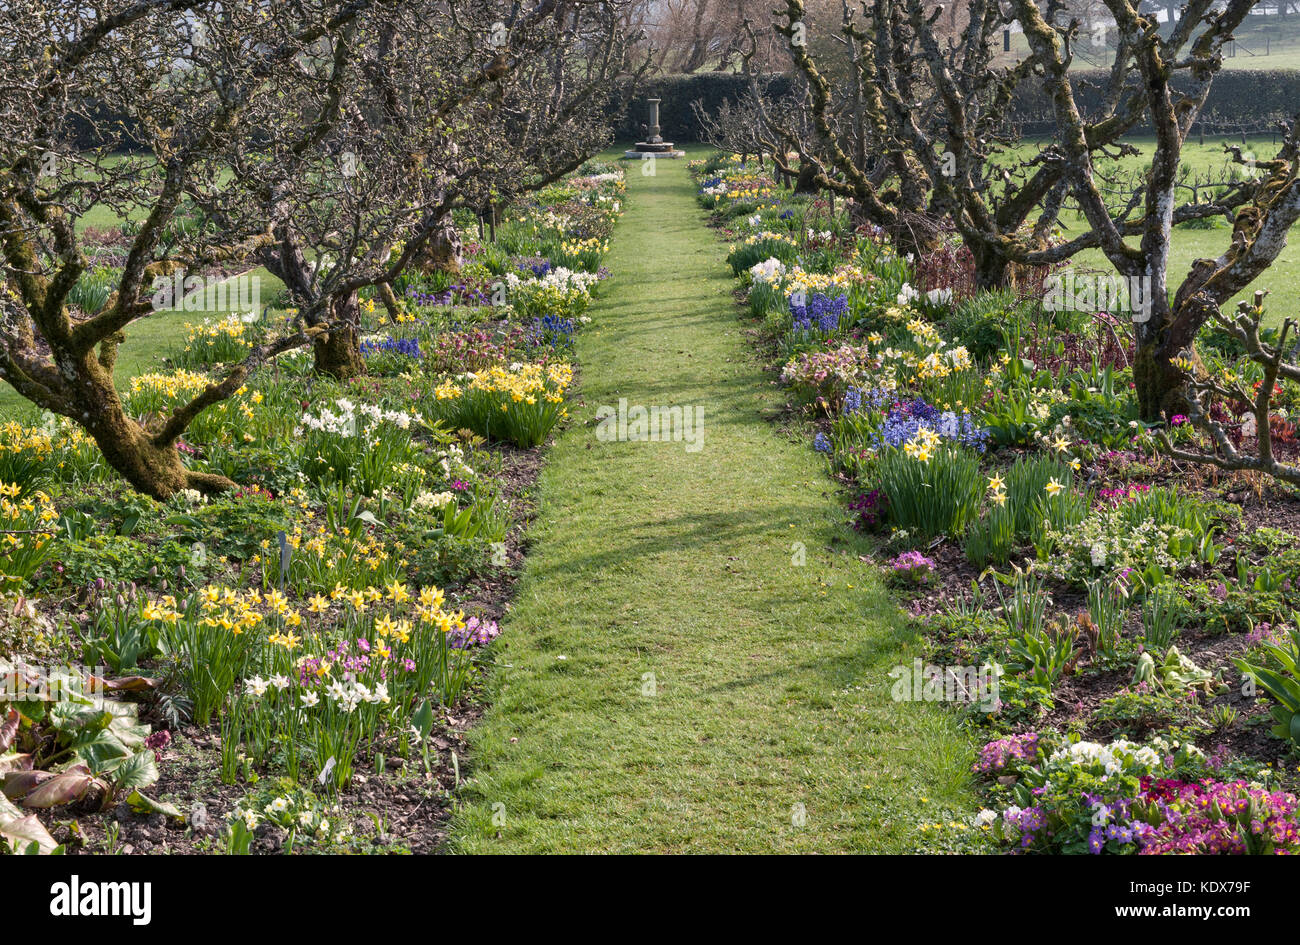 Hergest Croft Gardens, Kington, Herefordshire, UK. Spring borders with old apple trees - Stock Image